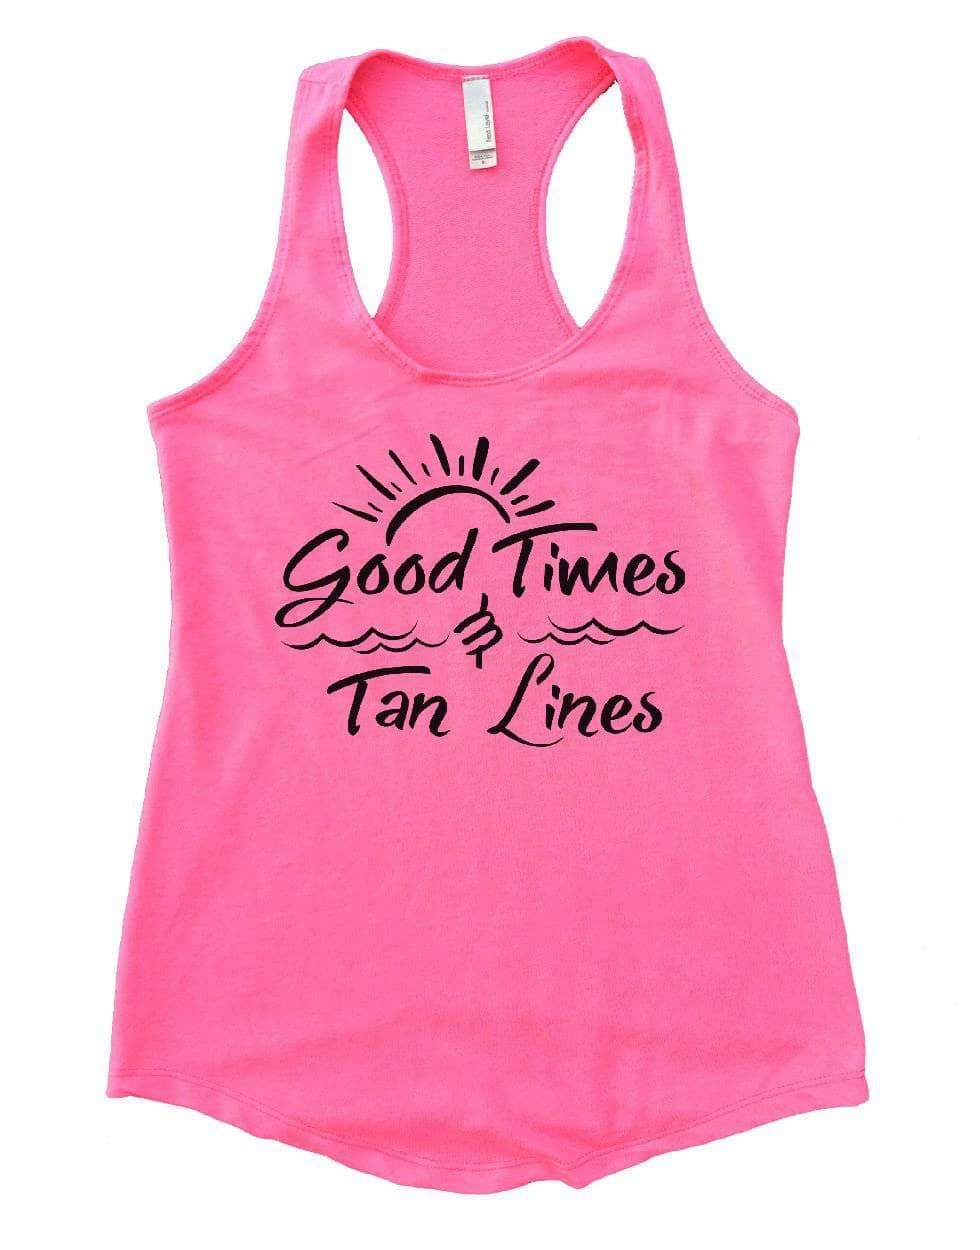 Good Times Tan Lines Womens Workout Tank Top Small Womens Tank Tops Heather Pink